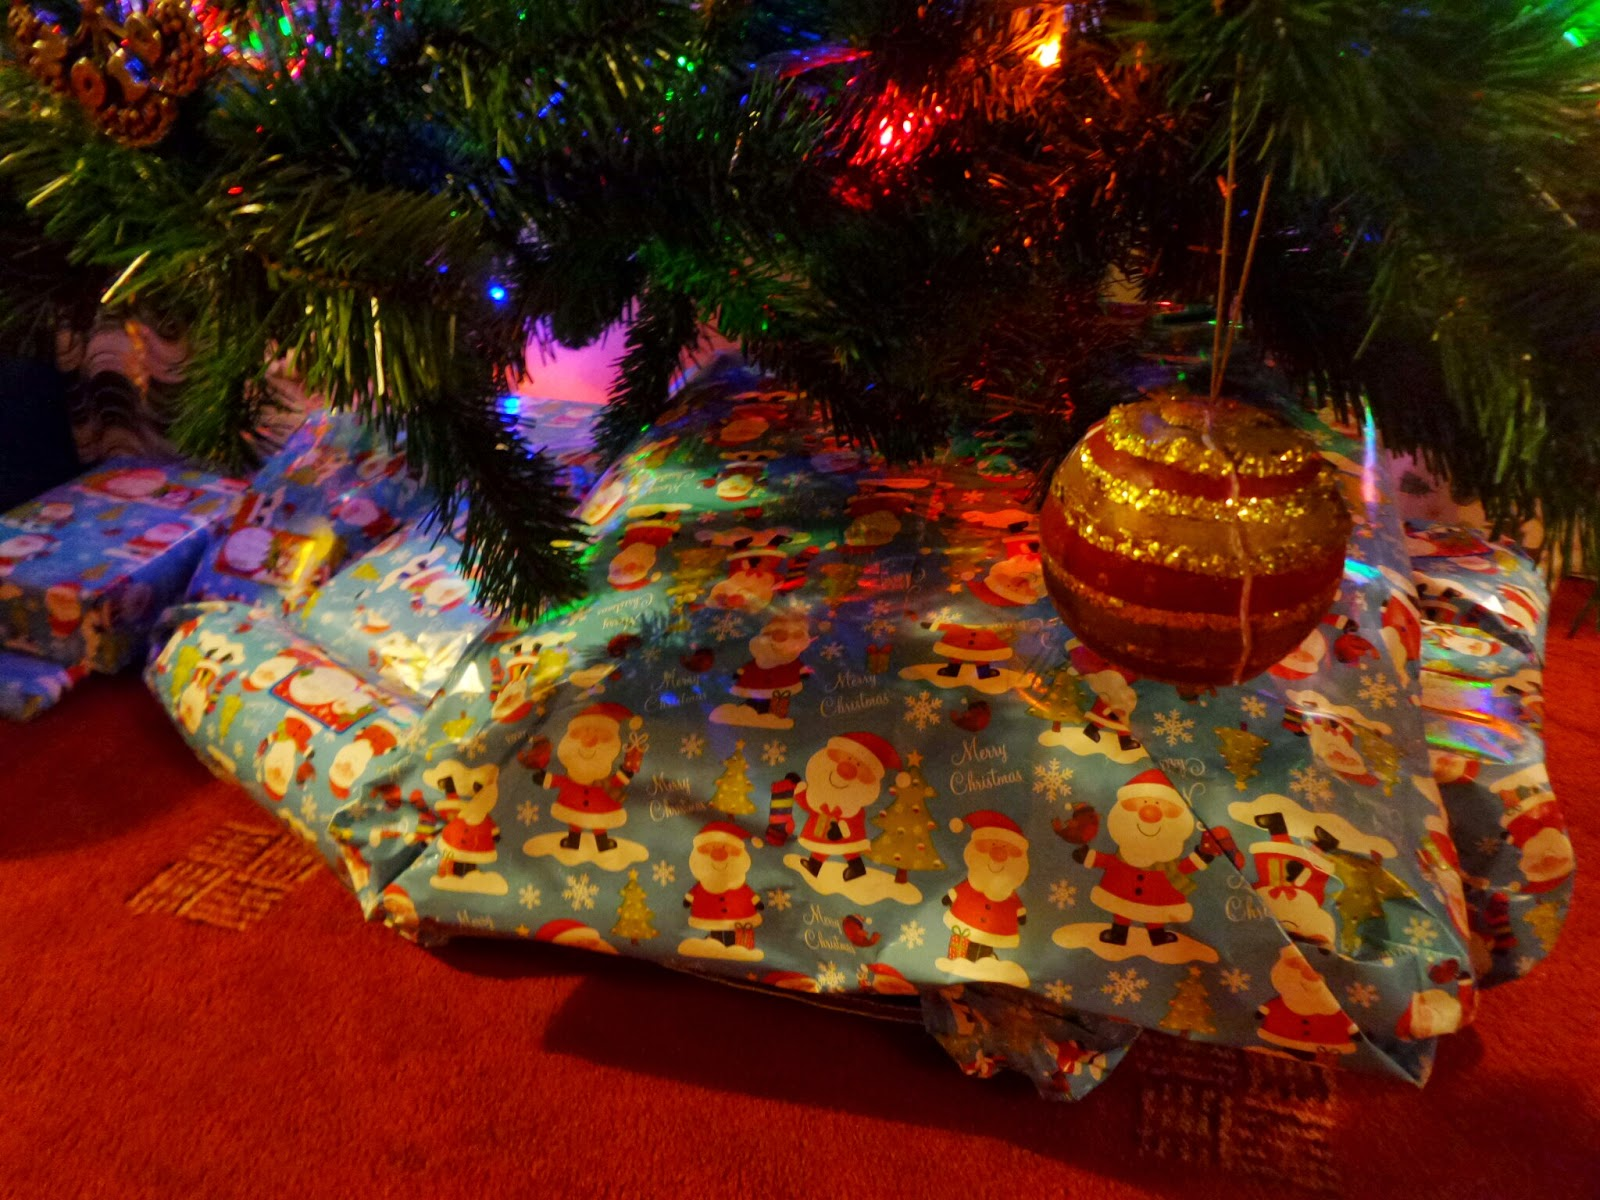 Secret Santa gifts under the tree